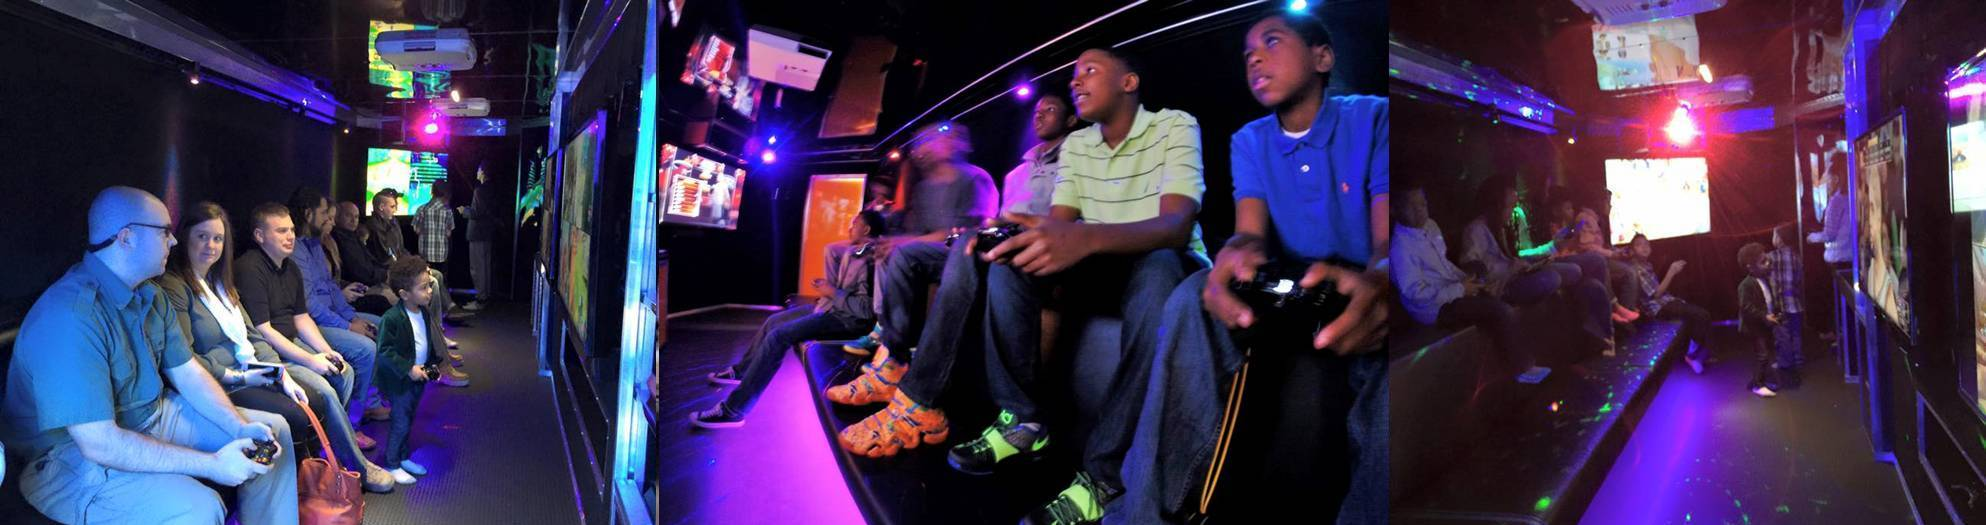 Video game truck birthday party in Charleston, South Carolina